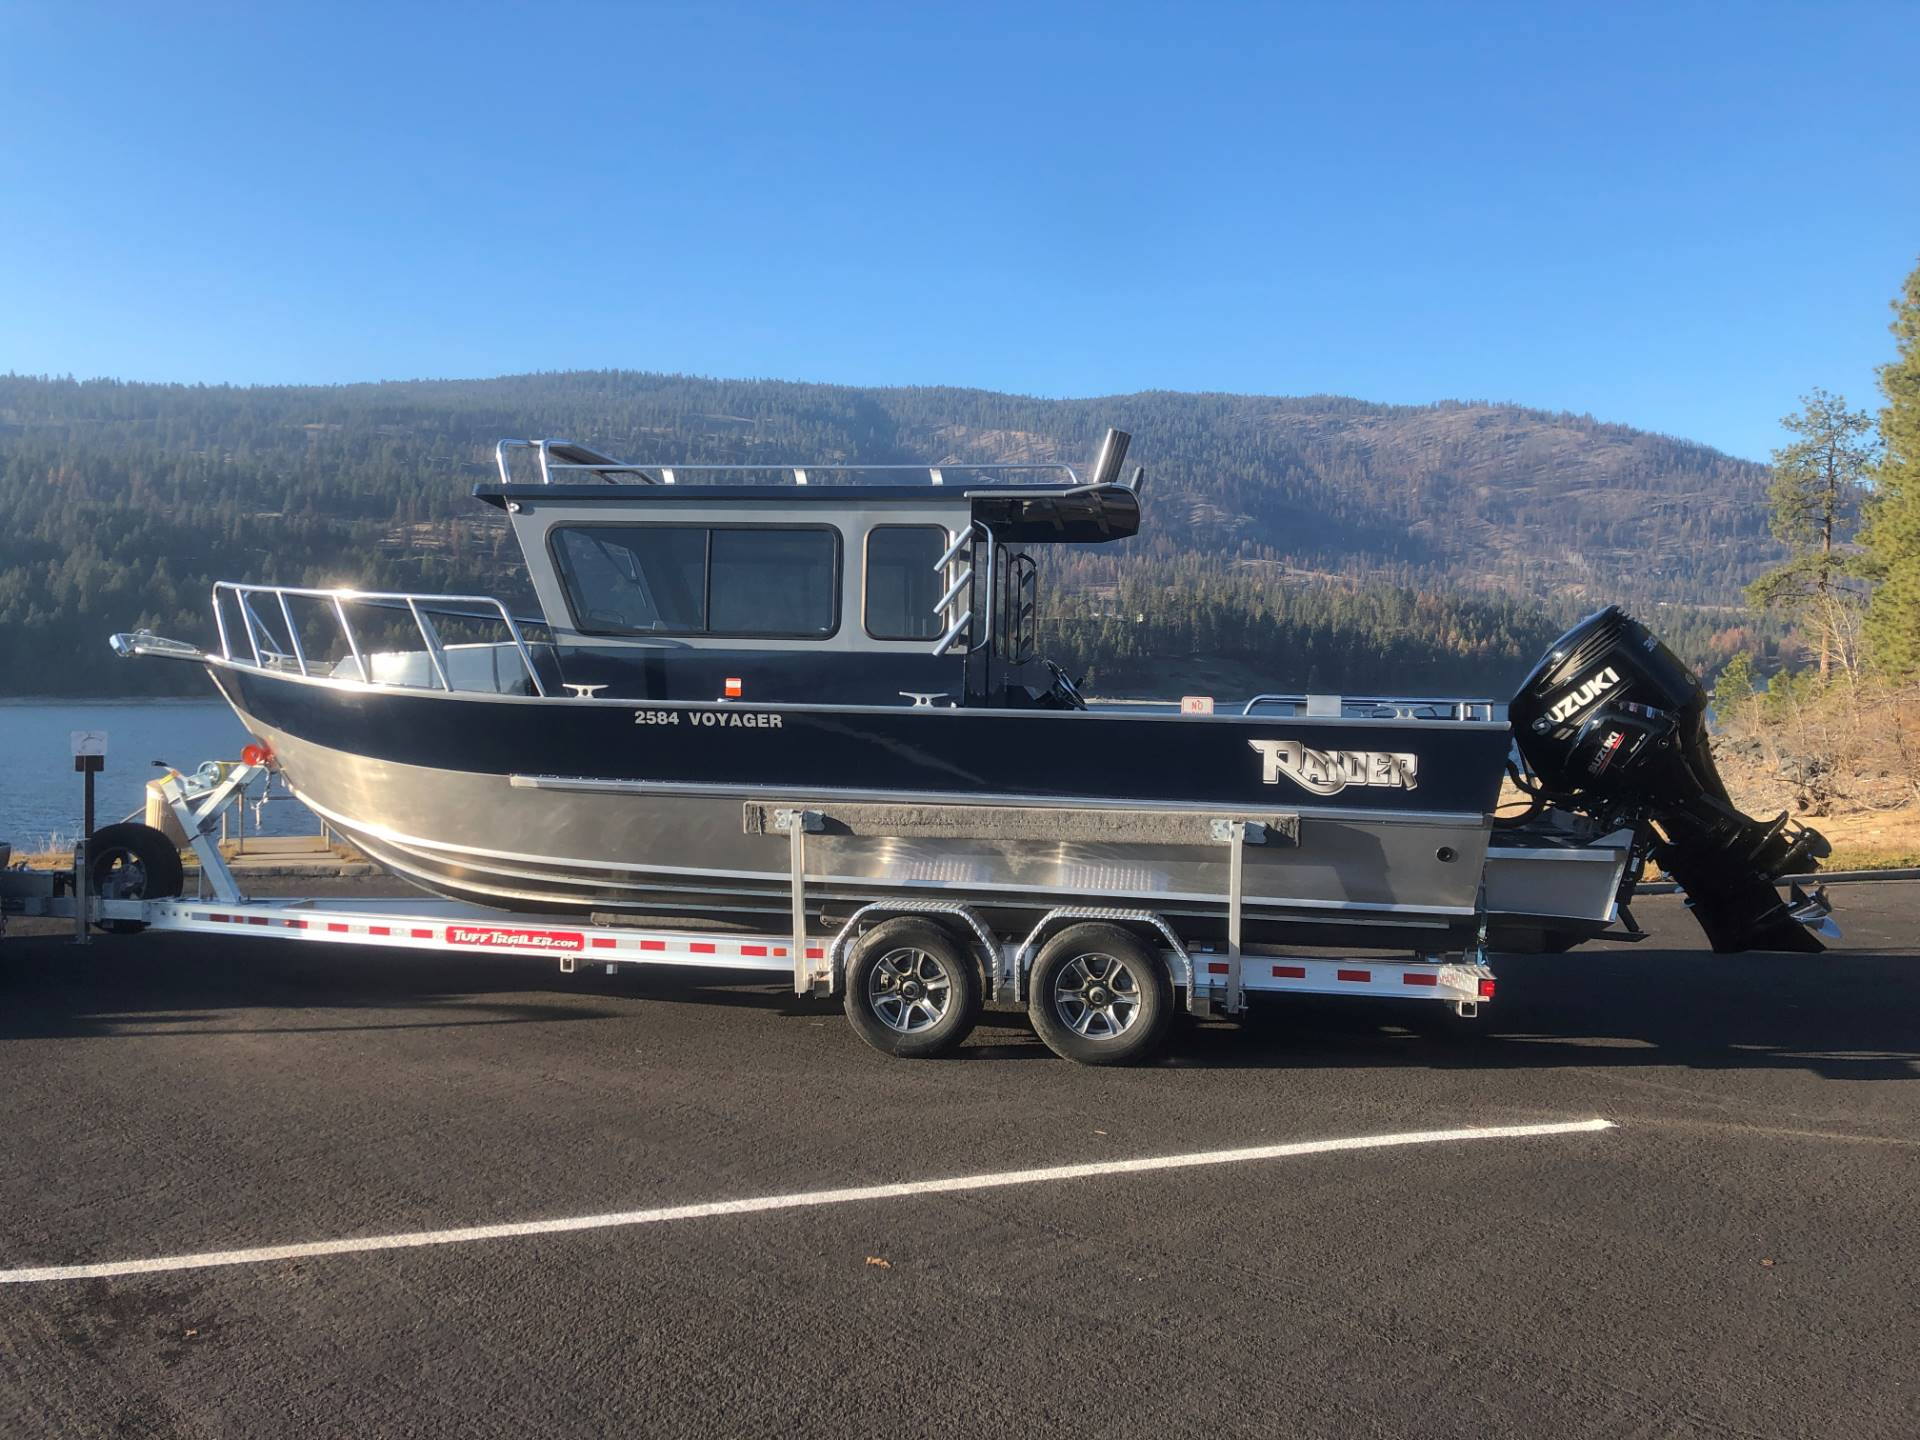 2020 Raider Boats 2584 Voyager SOLD!!!!! in Soldotna, Alaska